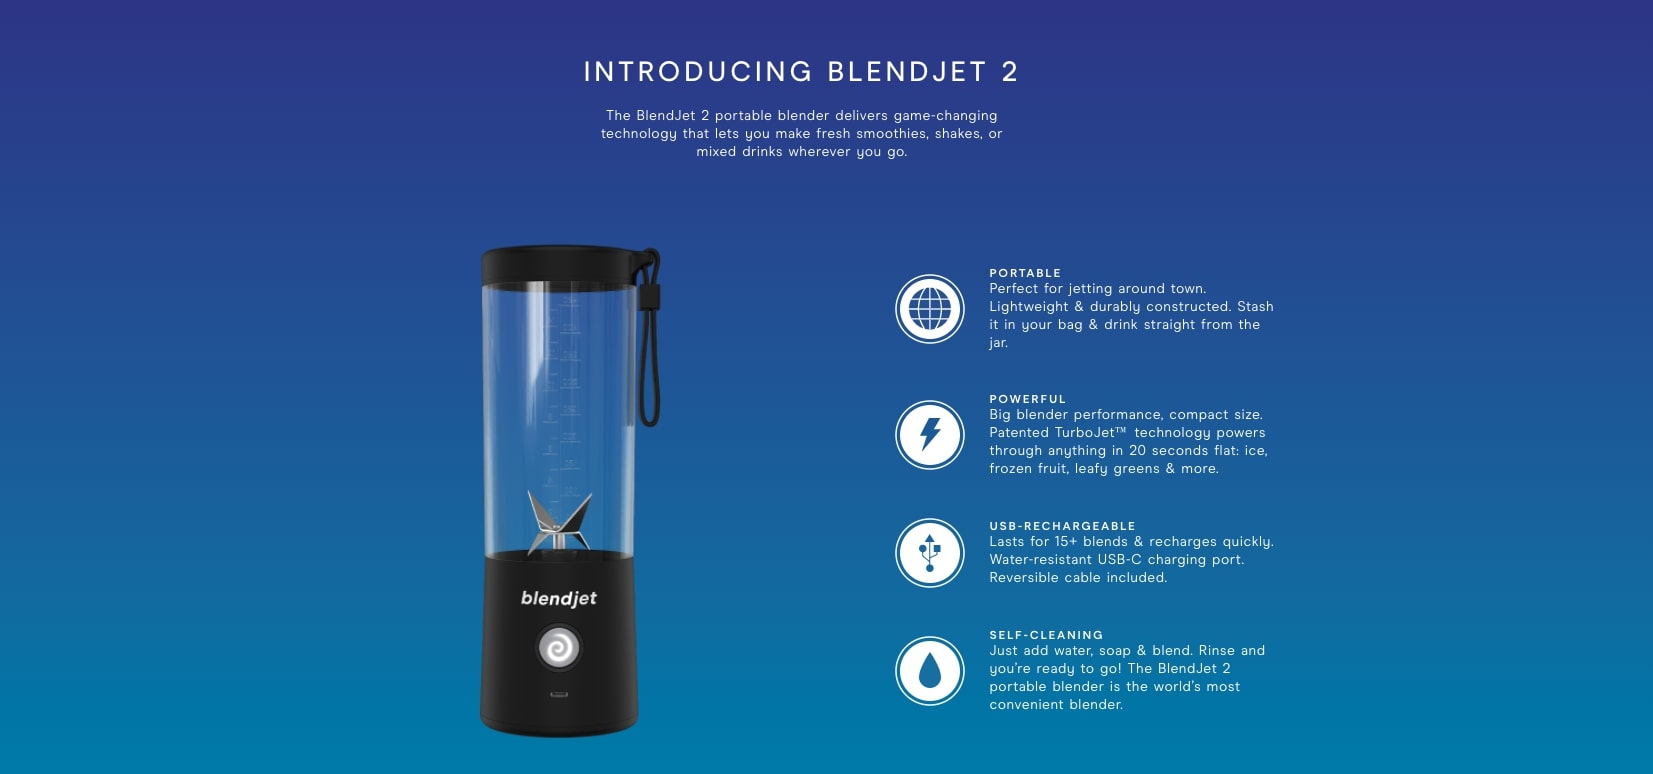 Screenshot of Blendjets homepage showing the Blendjet and its features